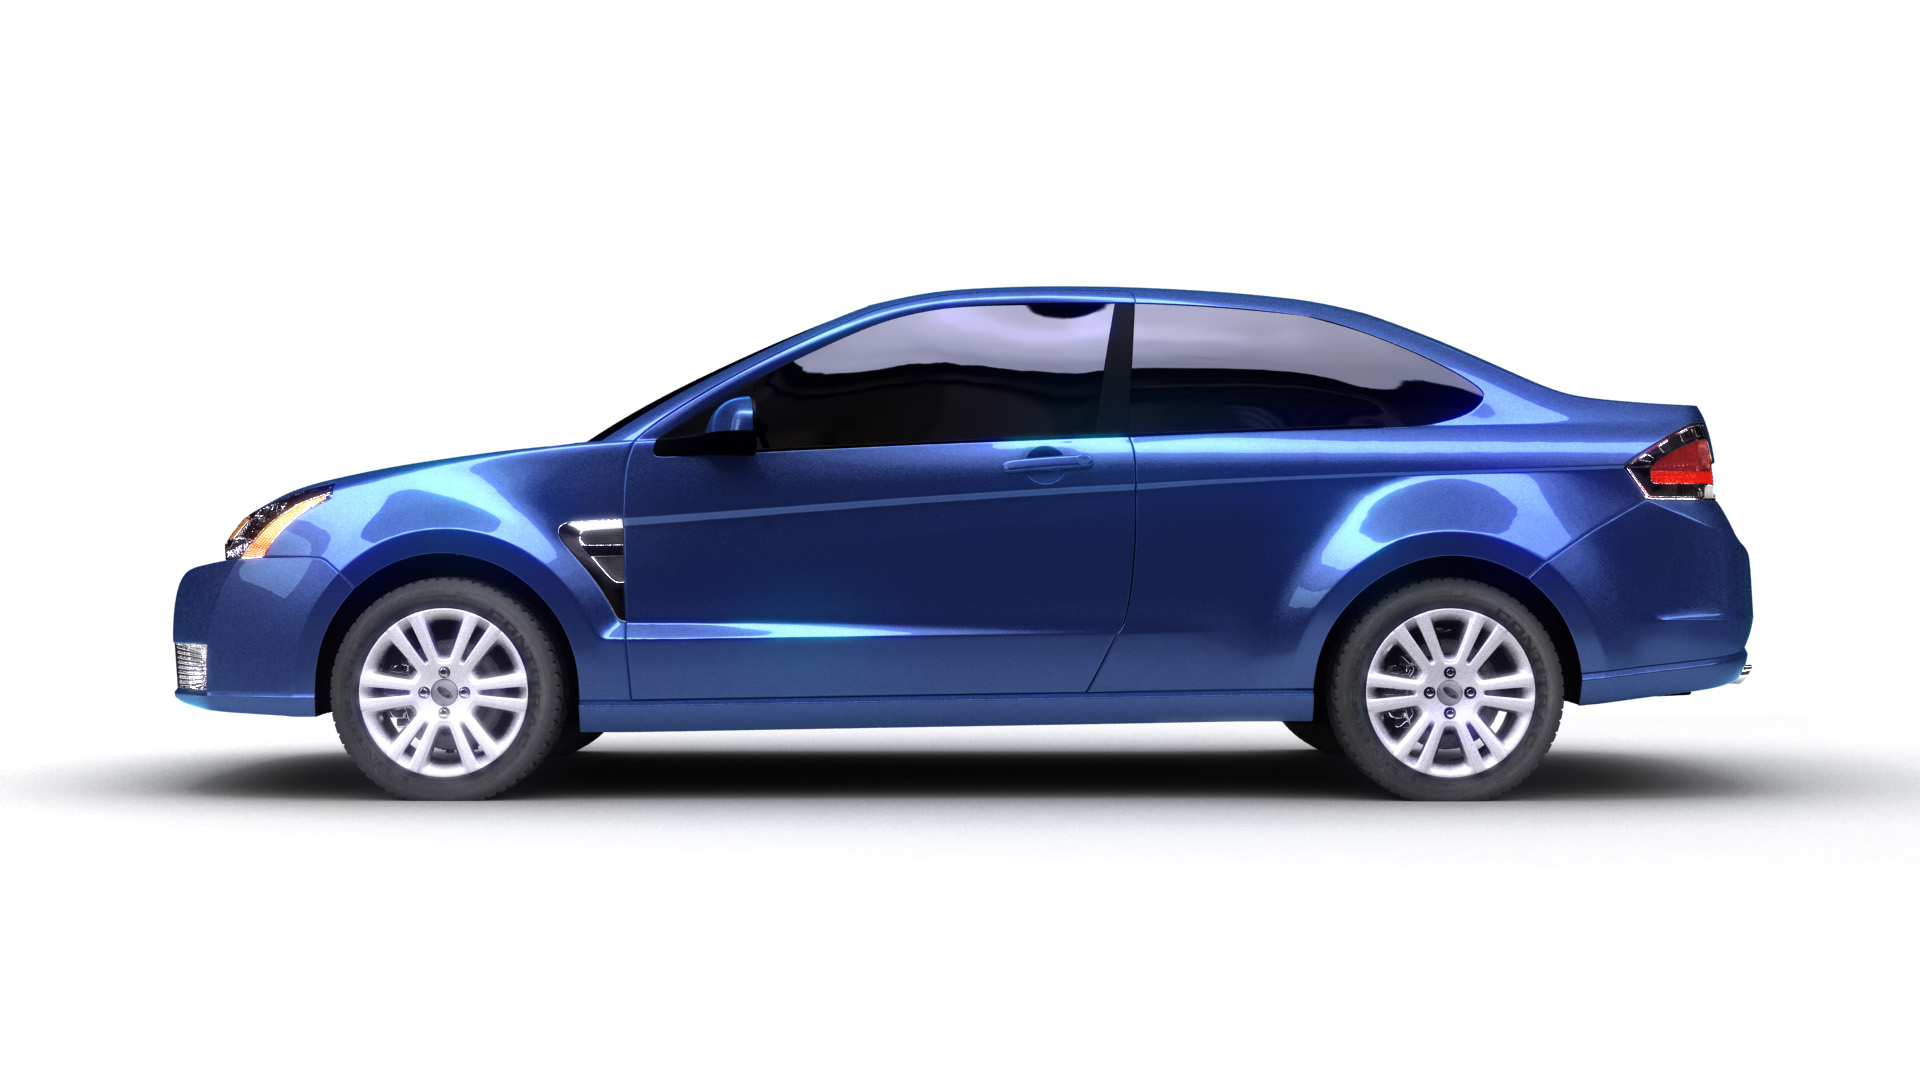 ford_focus_image01